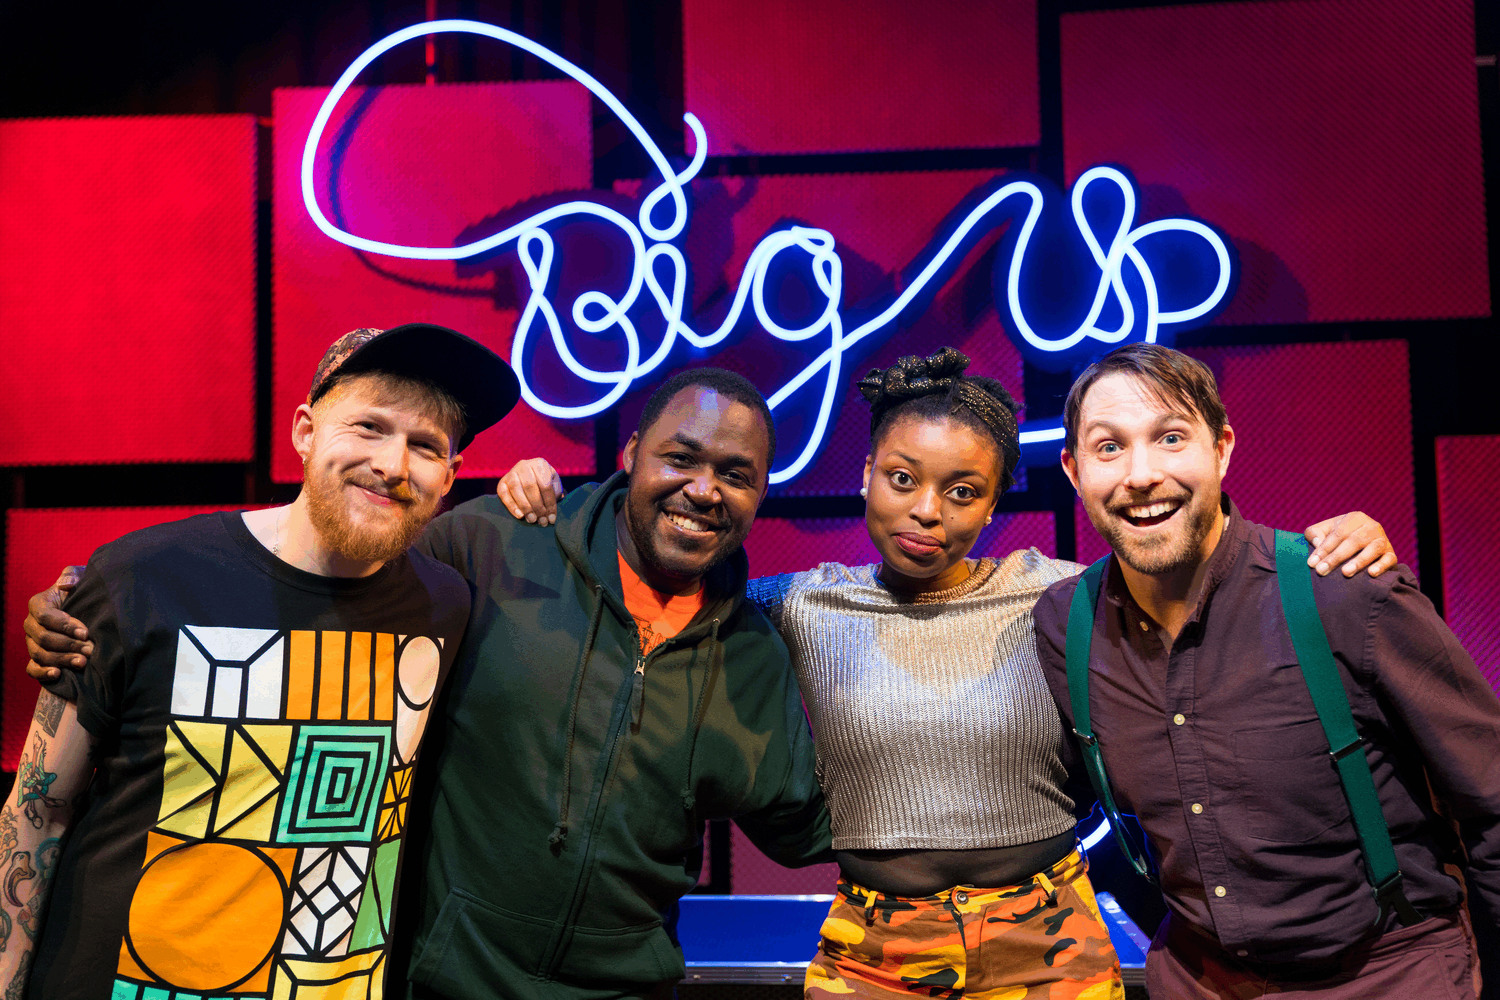 Cast: Jack Hobbs, Clarke Edwards, Dorcas Sebuyange, Iestyn Evans, wearing colourful clothing and posing with arms around one another in front of blue neon sign reading Big Up!